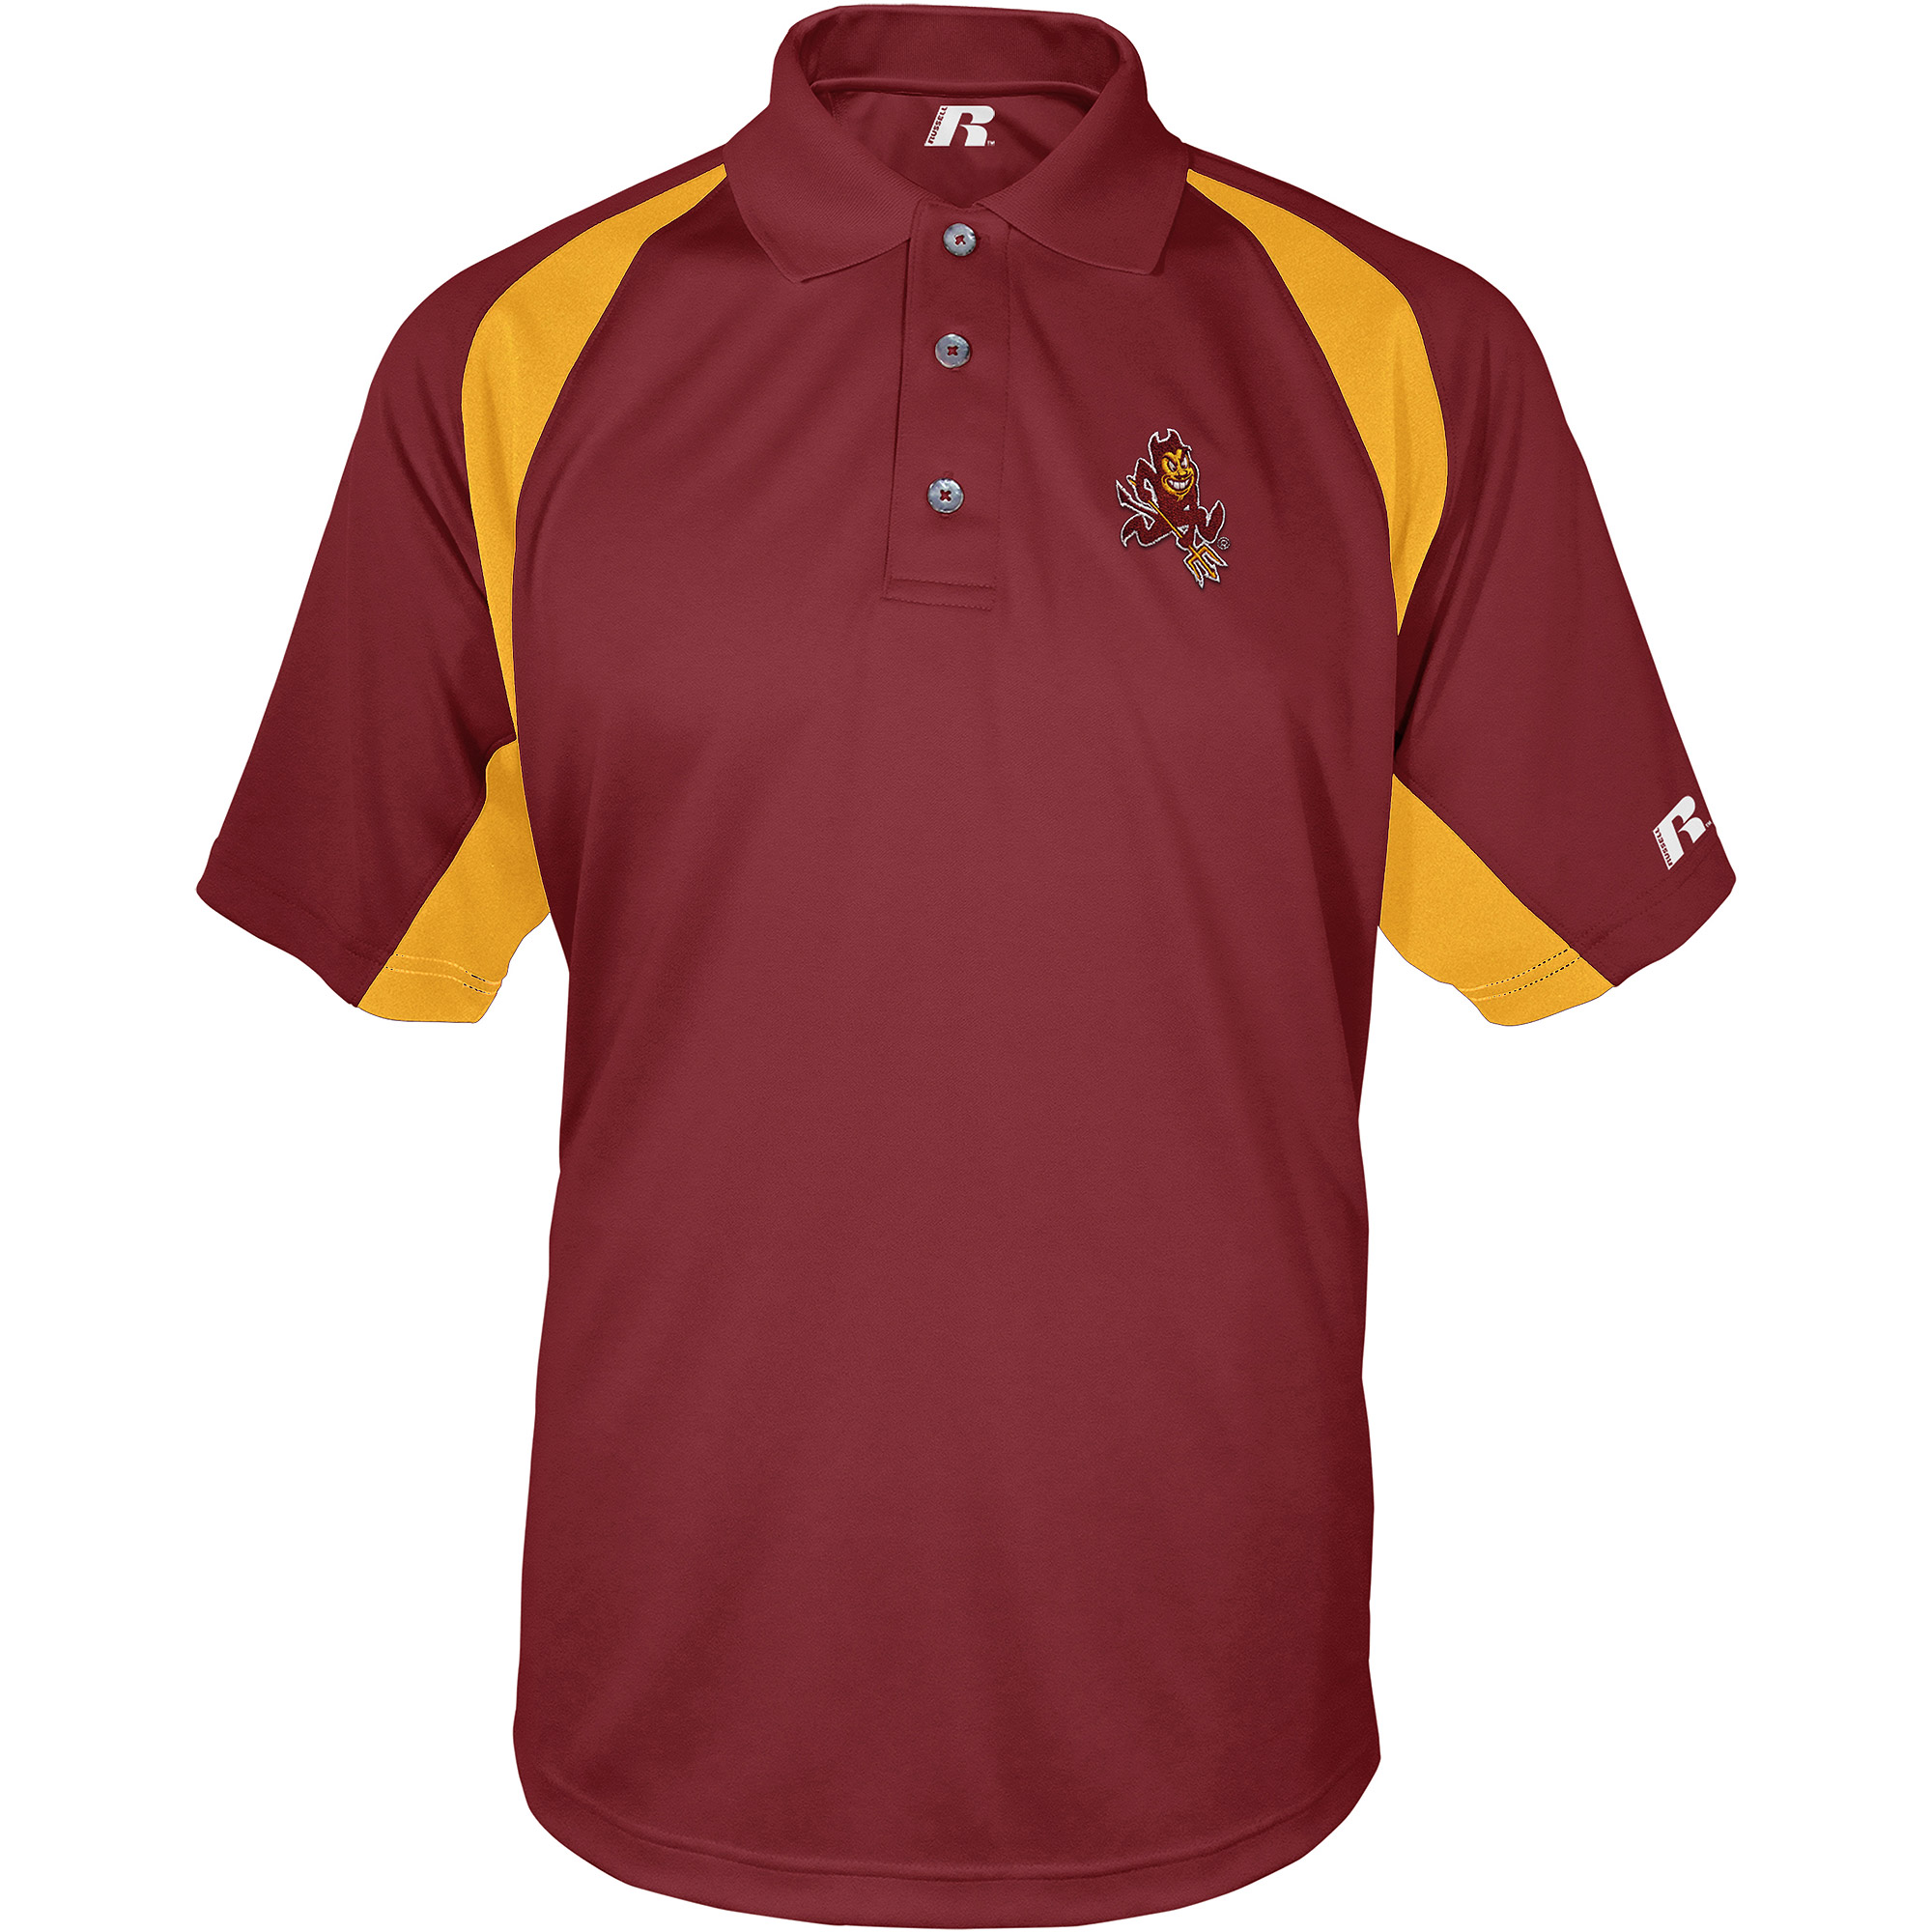 Russell NCAA Arizona State Sun Devils, Men's Synthetic Polo